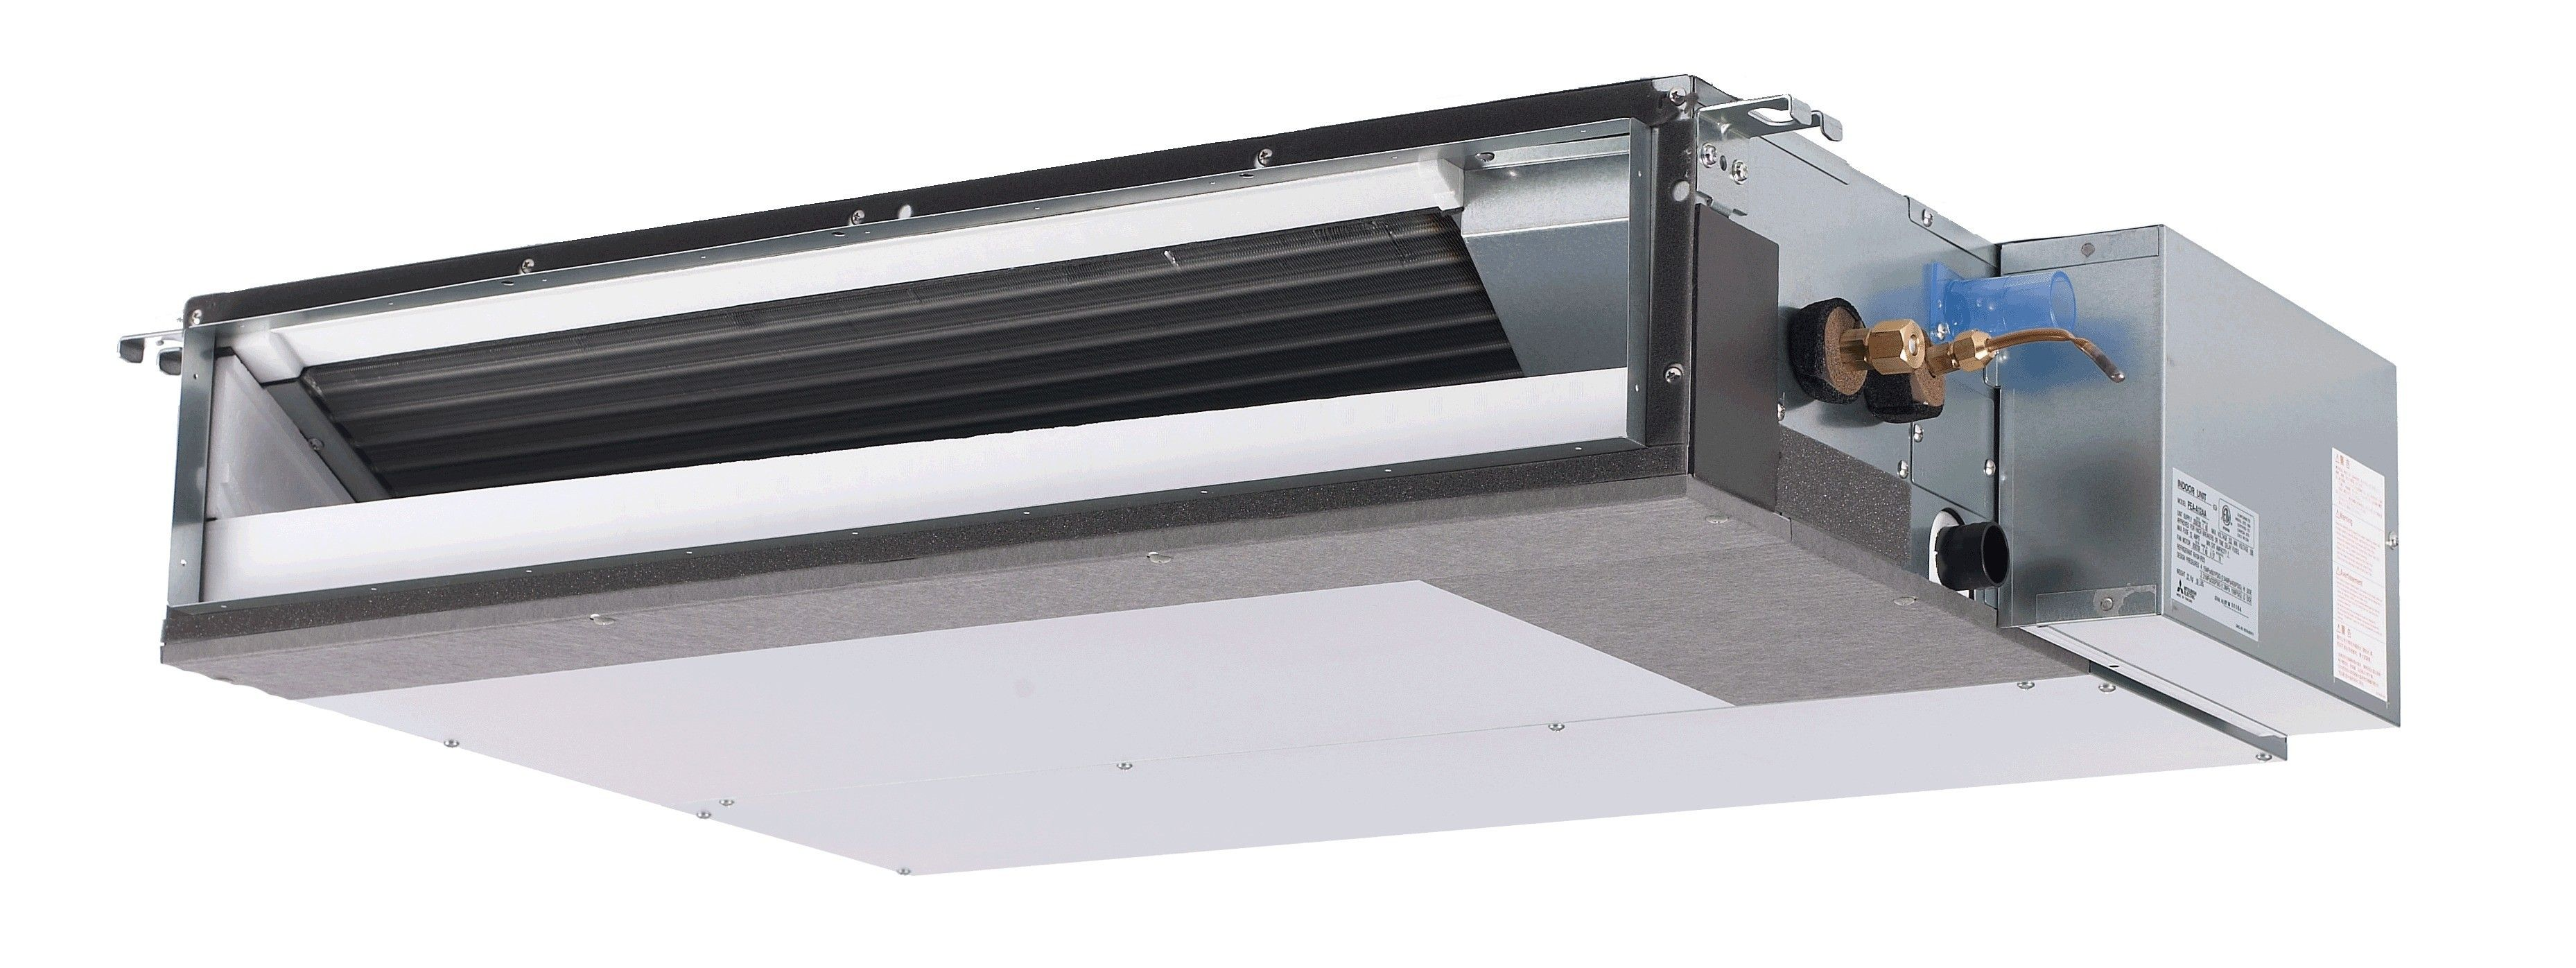 18K BTU Mitsubishi PEAD-A Horizontal Ducted Indoor Unit